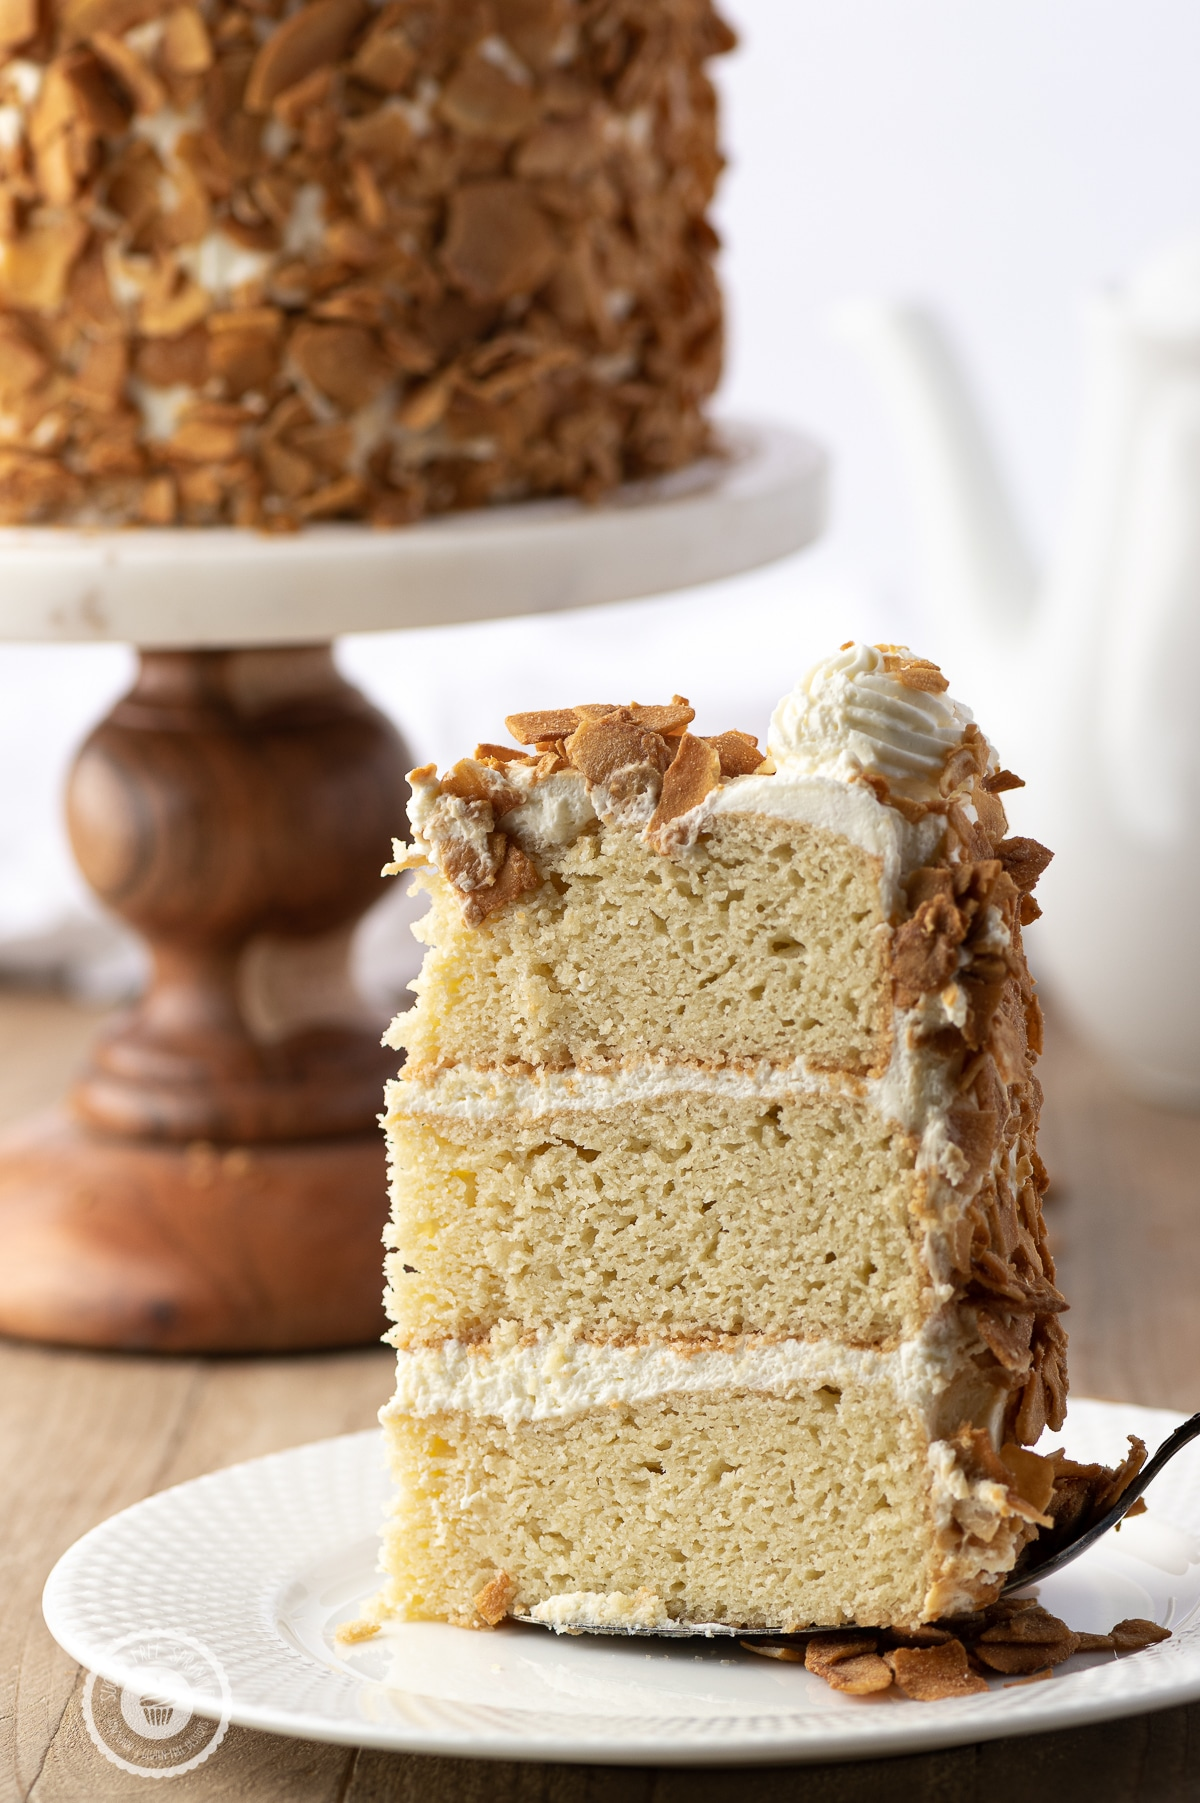 A slice of three layer coconut cake on a white plate with a rustic wooden tabletop.